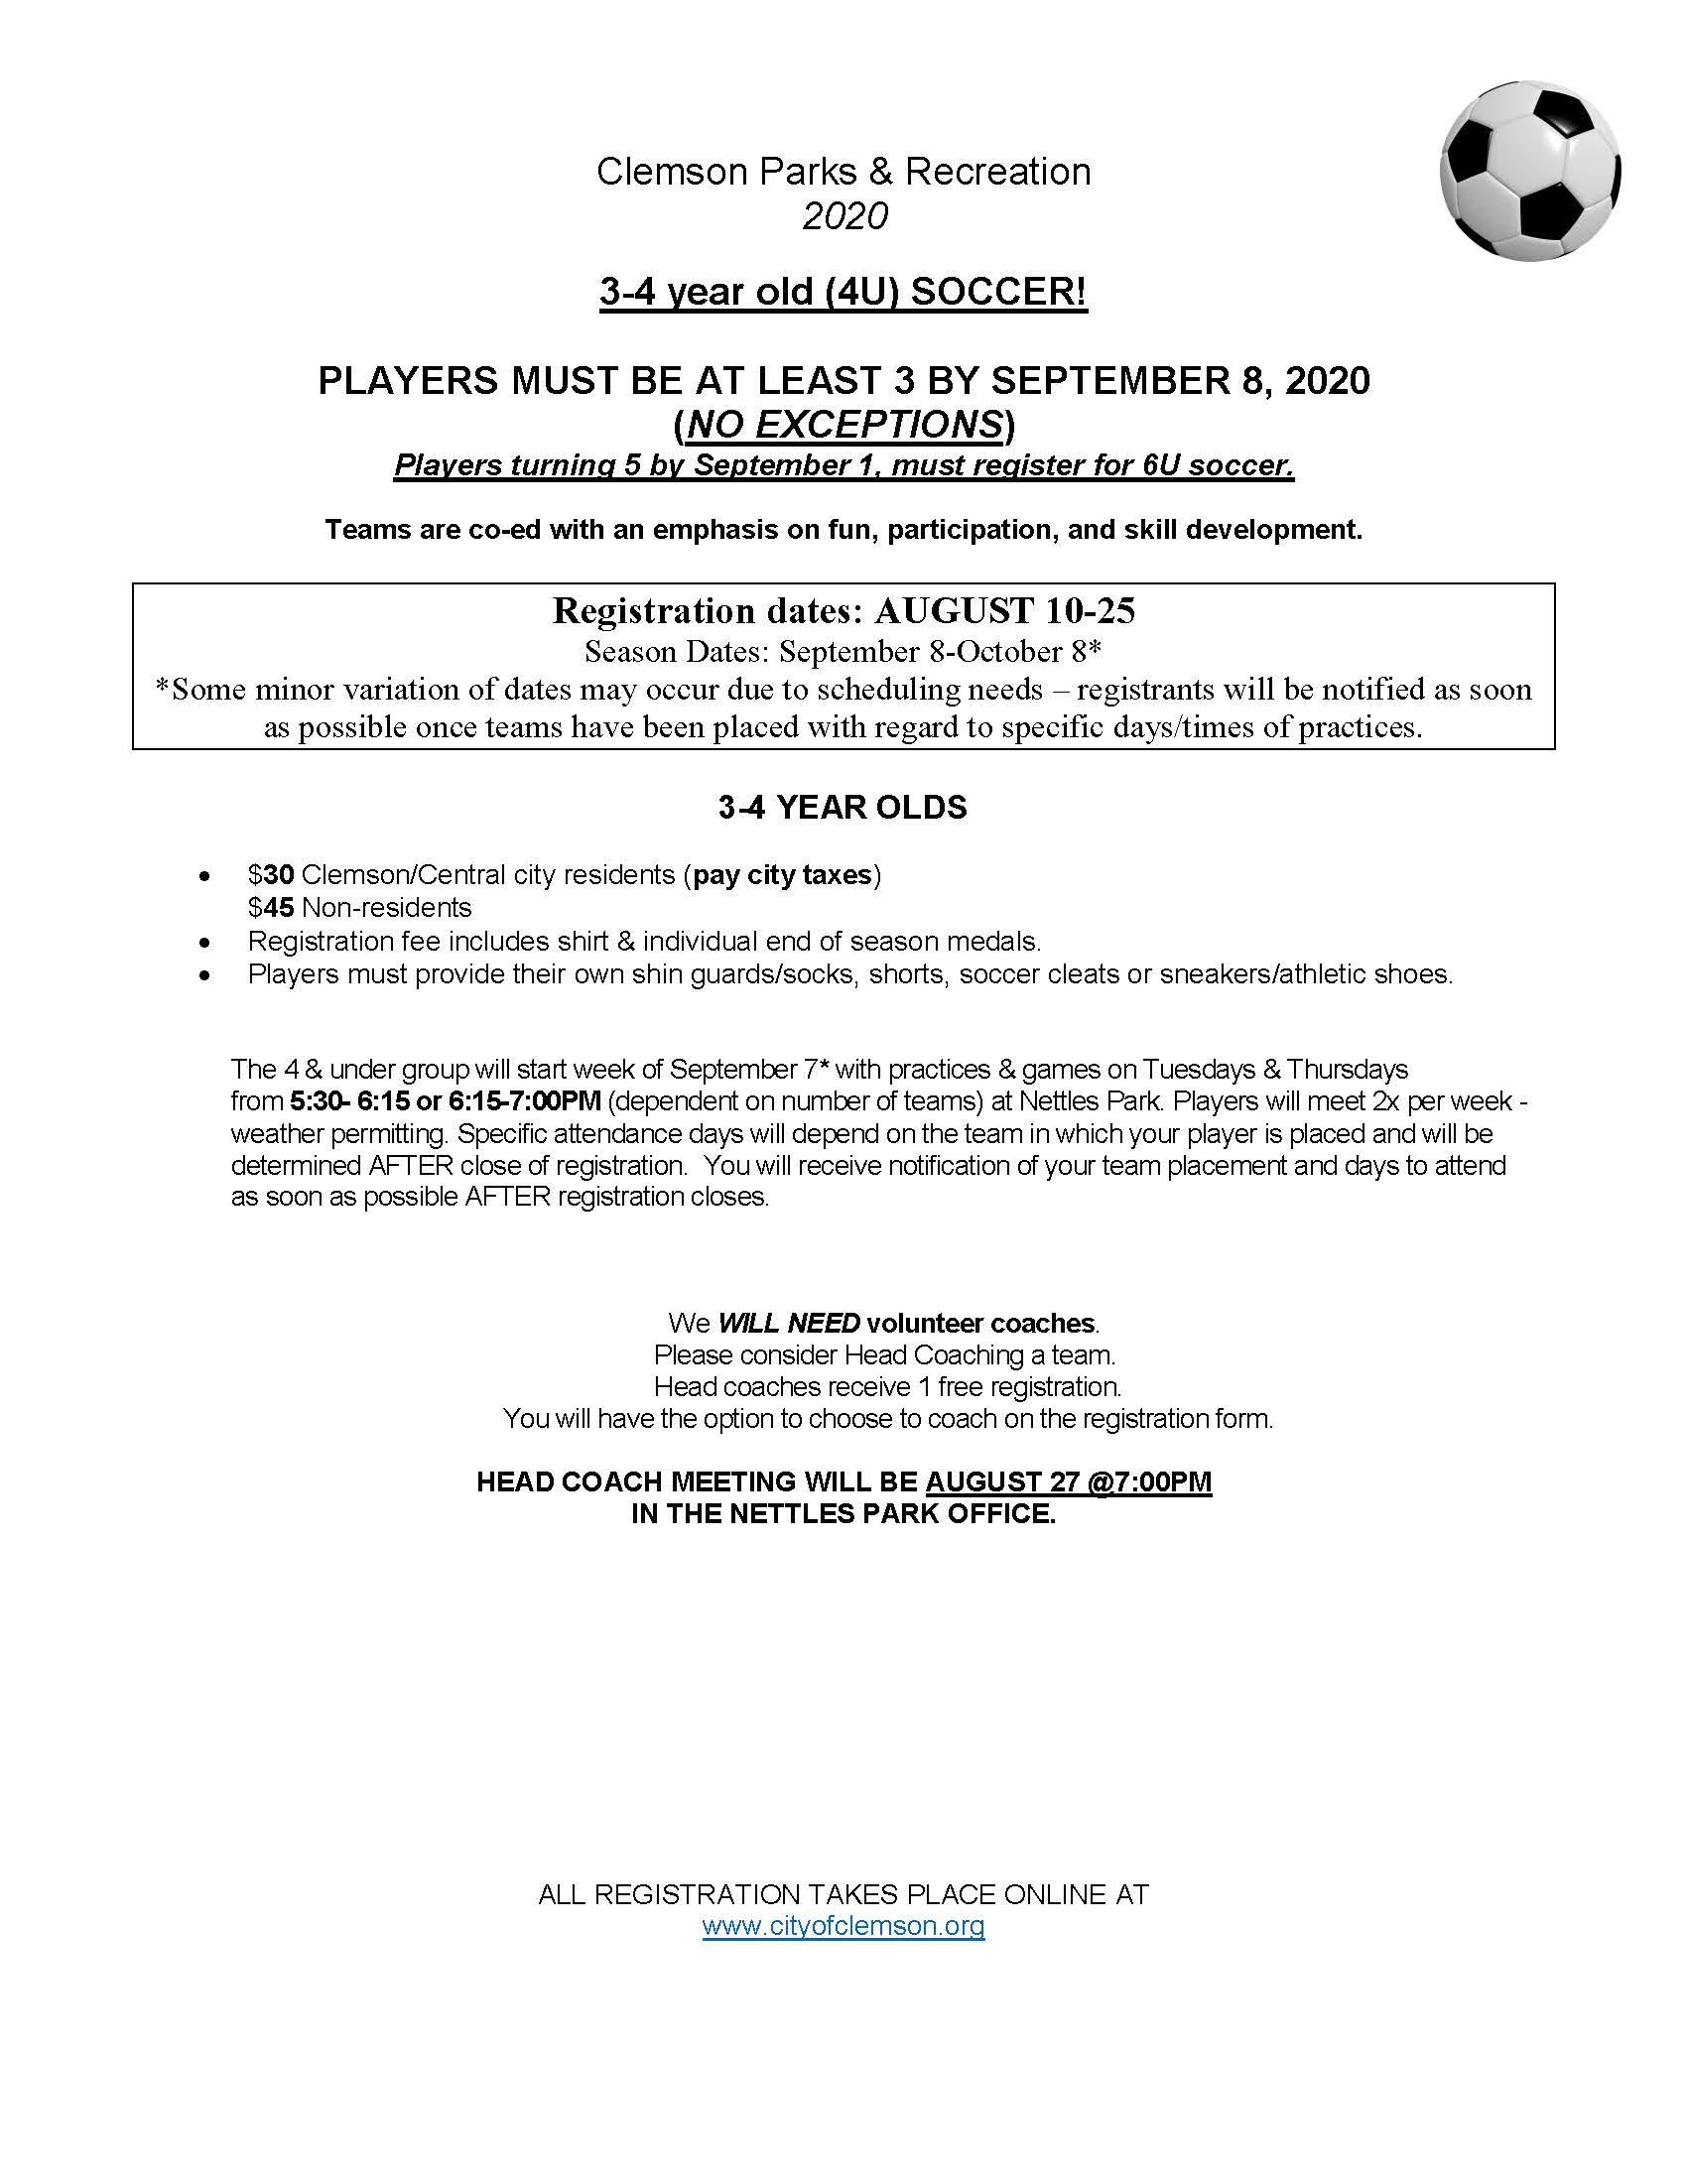 3-4 year old Soccer - Fall 2020 - informational flyer